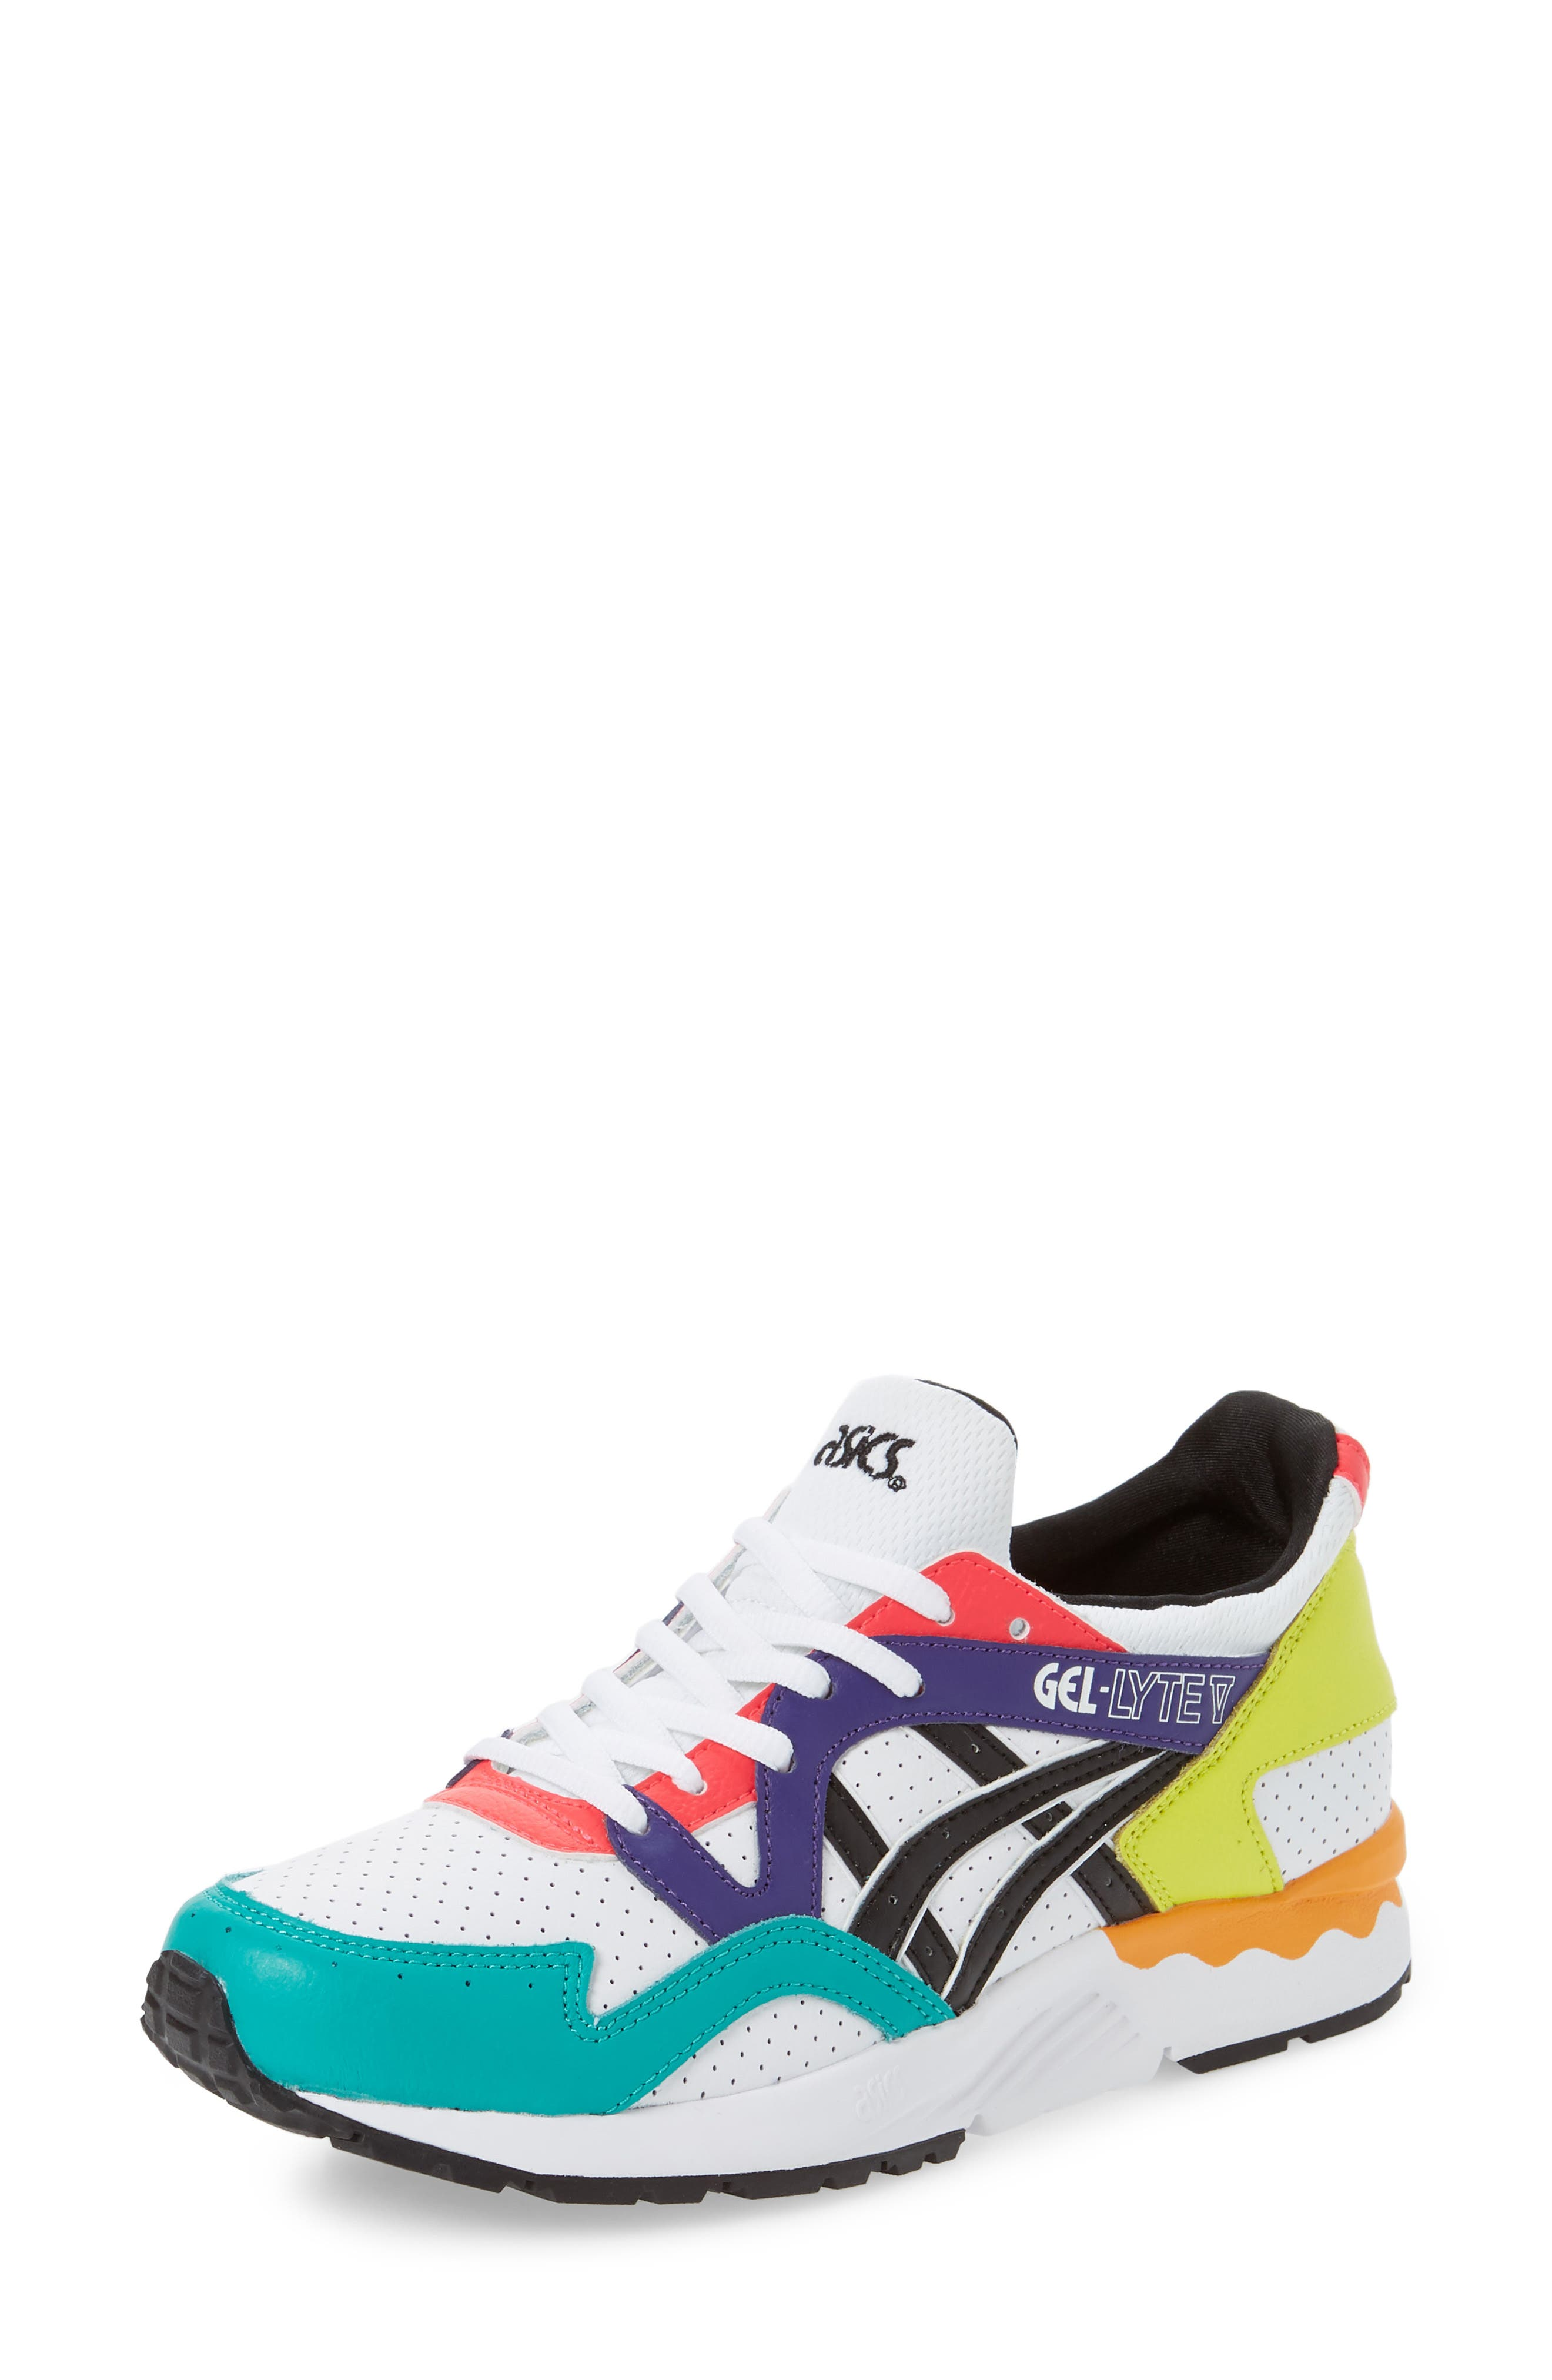 Details about Asics Womens Gel Flashpoint B256N Size 10 Volleyball Athletic Shoes MultiColor